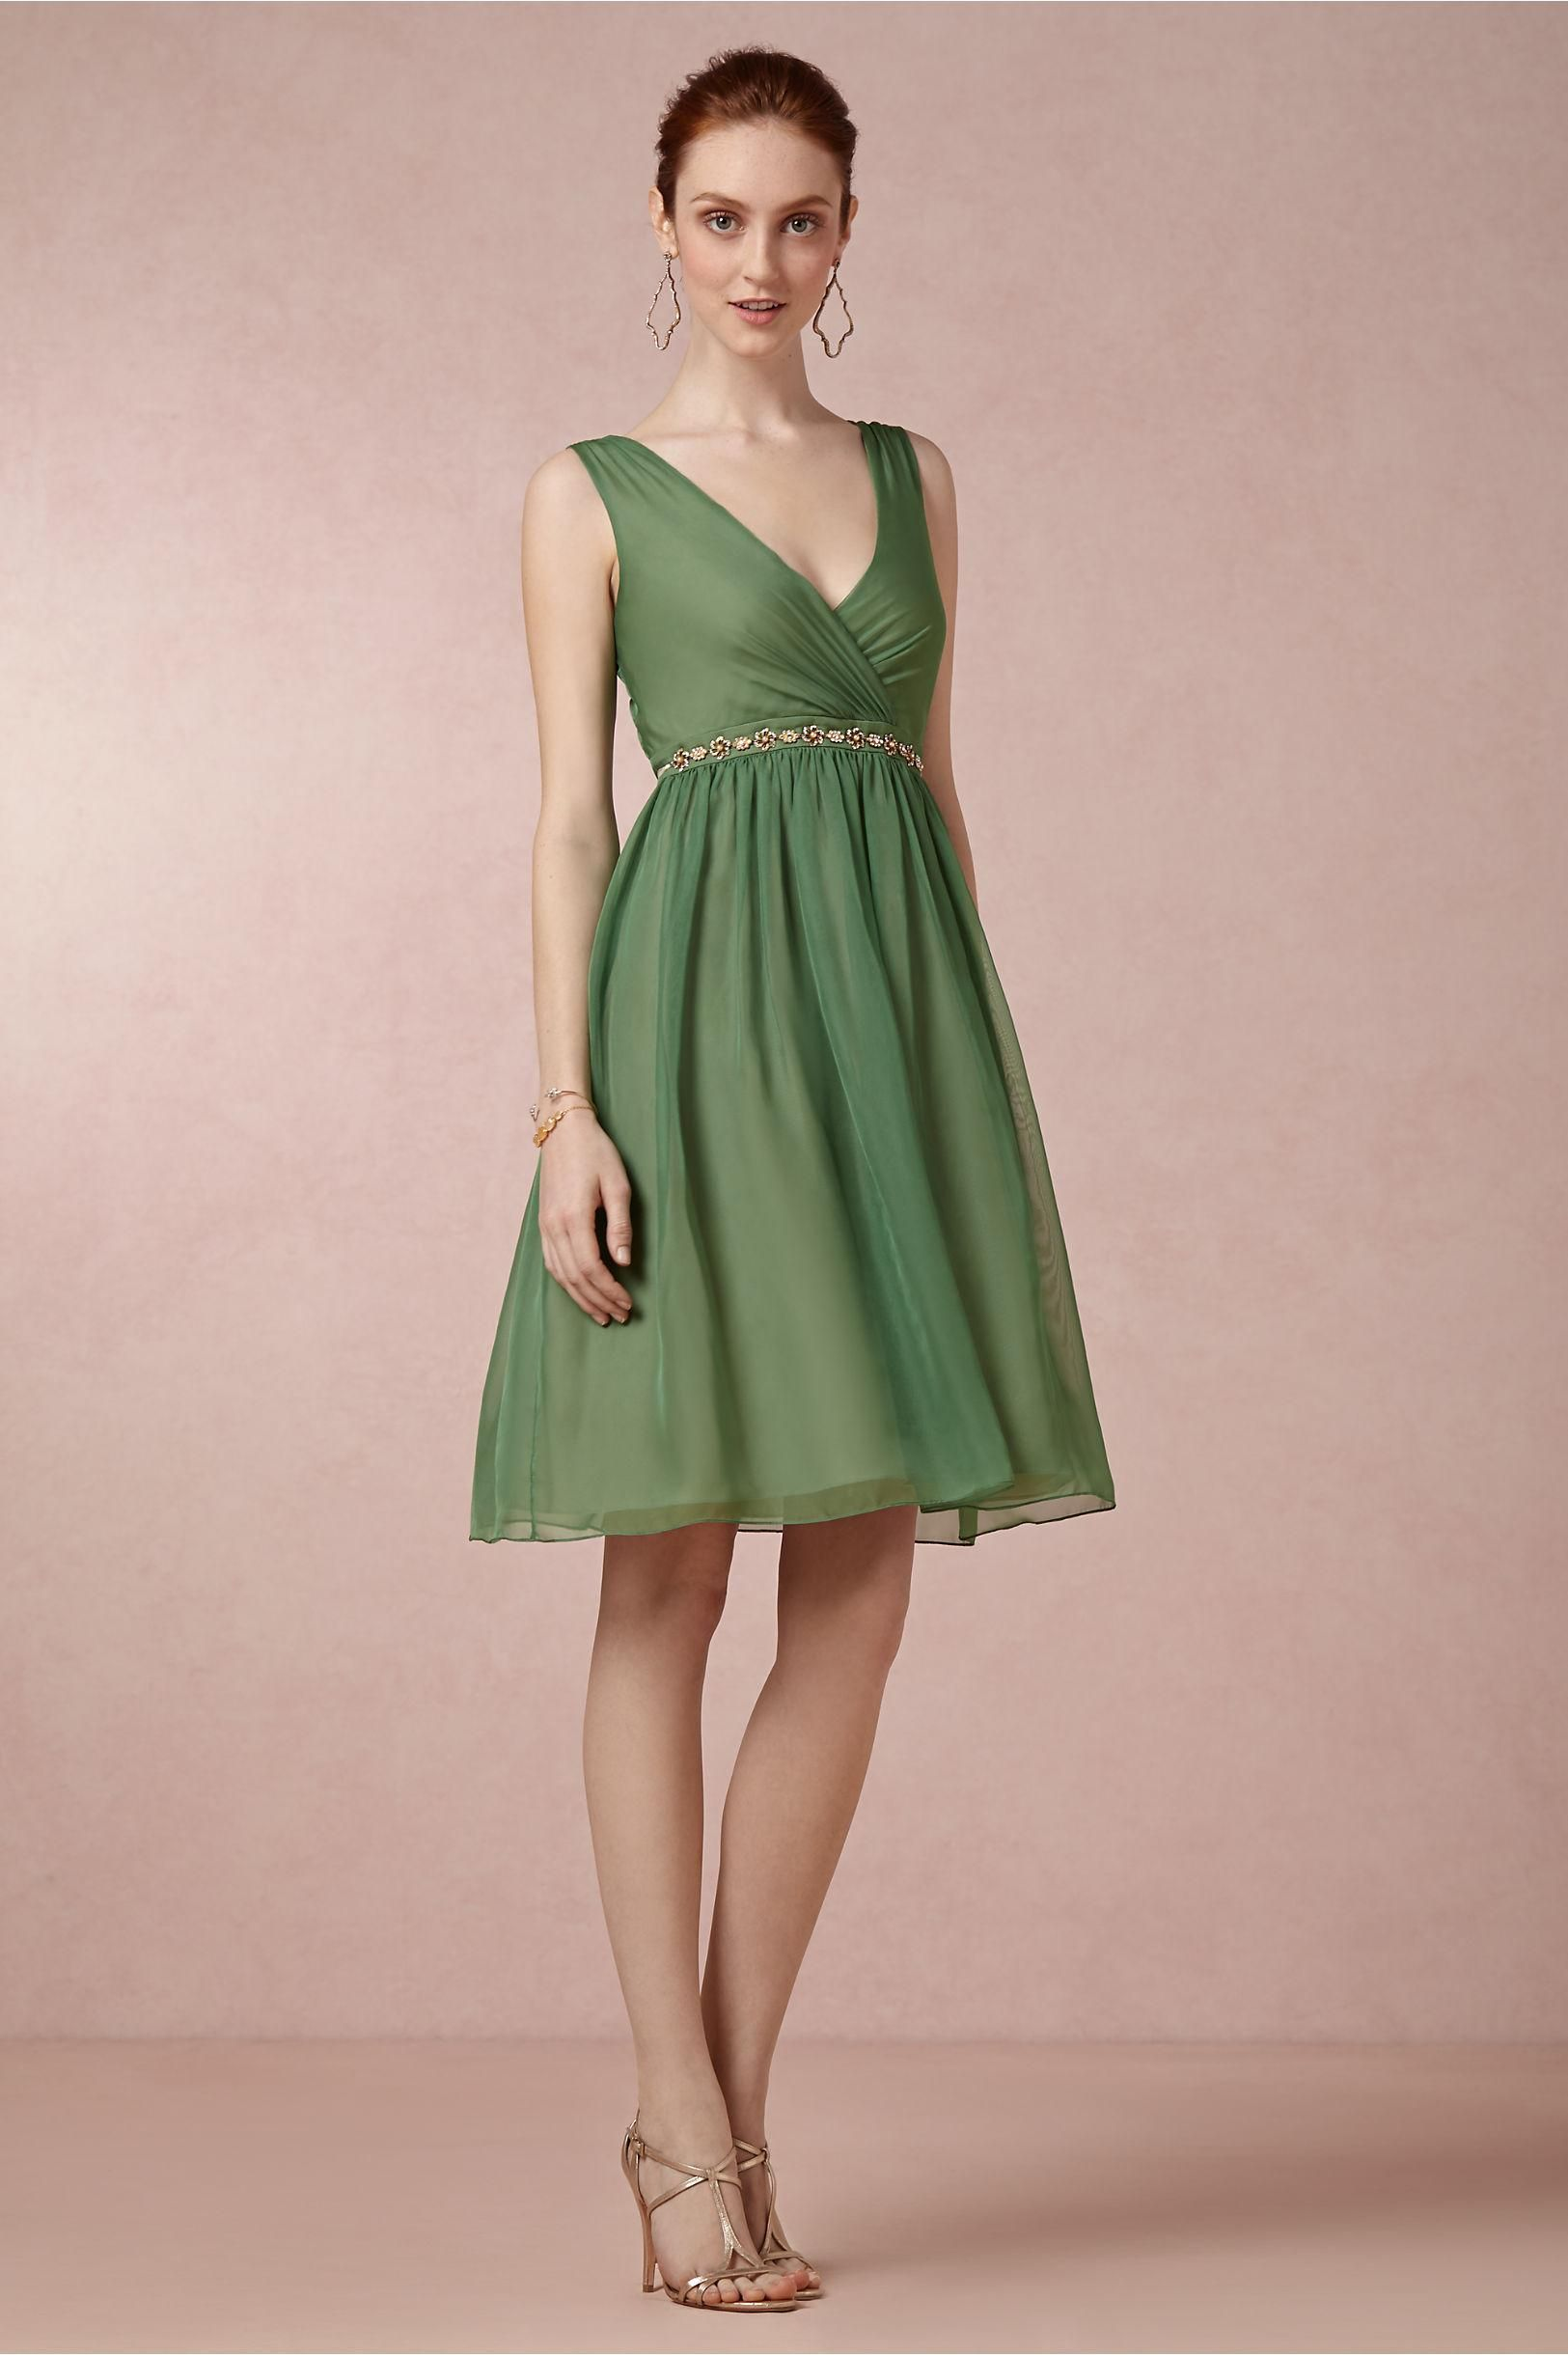 Ivy Green bridesmaids dress from BHLDN. The \